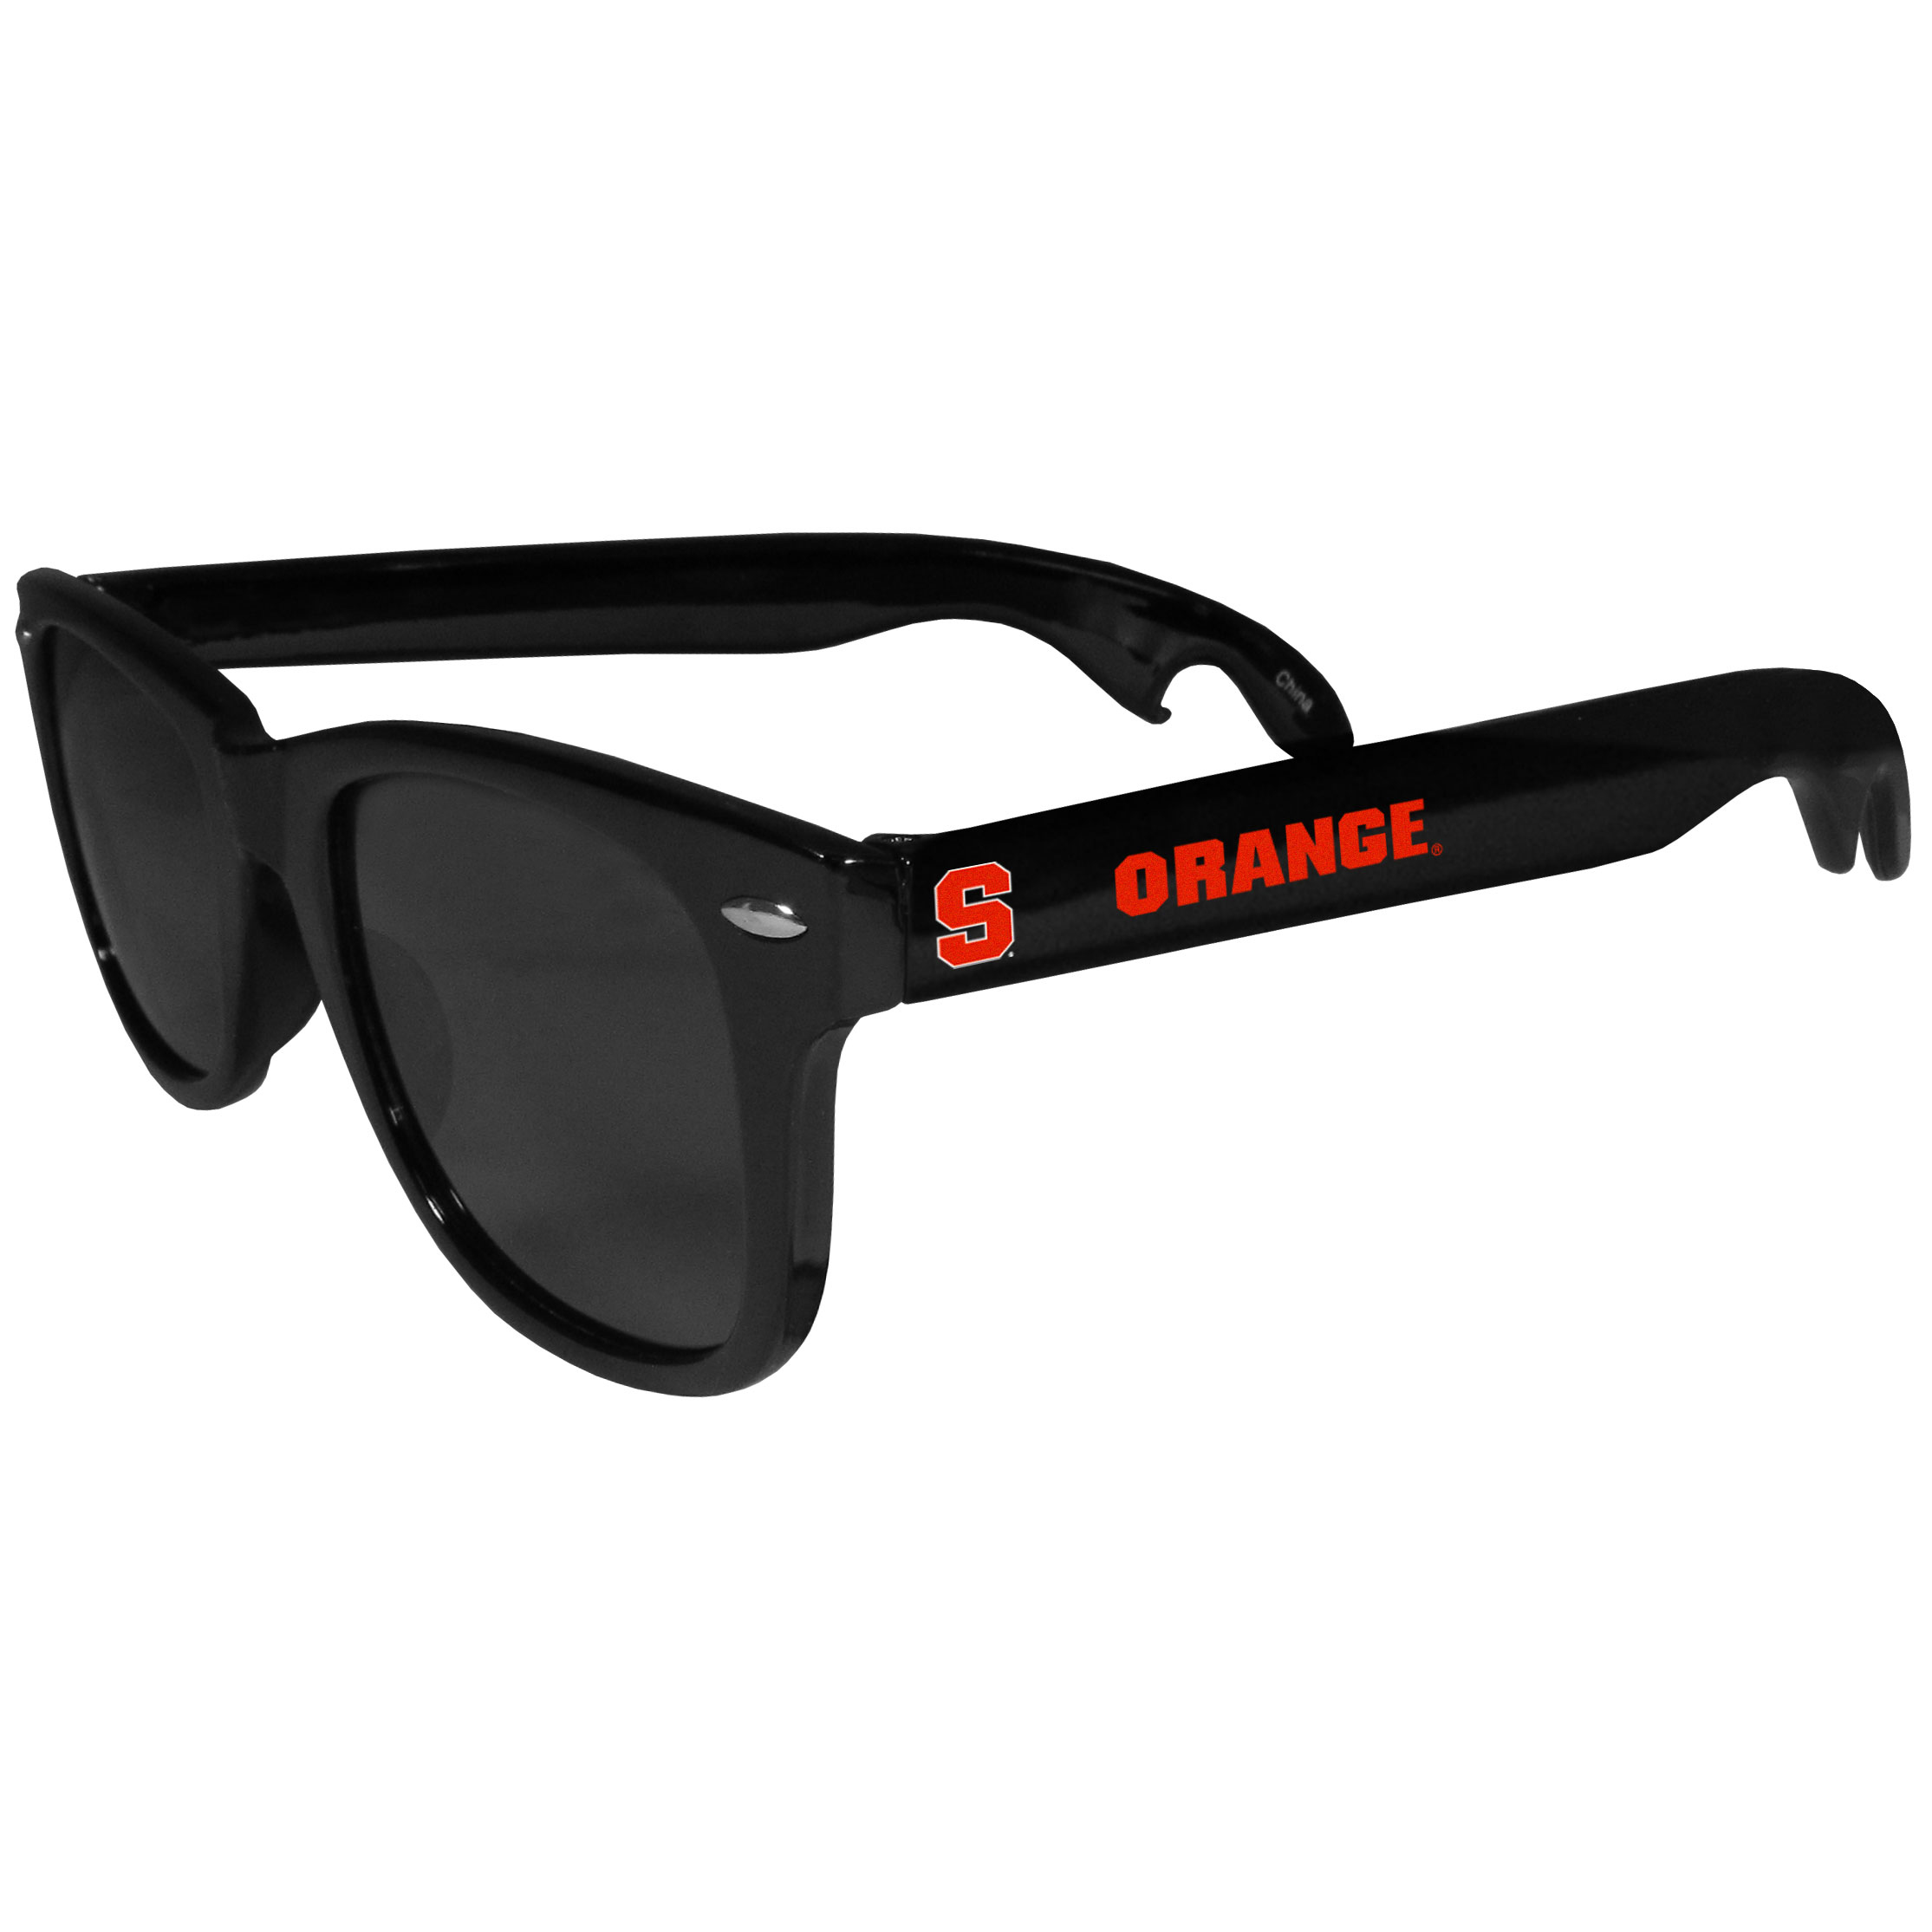 Syracuse Orange Beachfarer Bottle Opener Sunglasses - Seriously, these sunglasses open bottles! Keep the party going with these amazing Syracuse Orange bottle opener sunglasses. The stylish retro frames feature team designs on the arms and functional bottle openers on the end of the arms. Whether you are at the beach or having a backyard BBQ on game day, these shades will keep your eyes protected with 100% UVA/UVB protection and keep you hydrated with the handy bottle opener arms.